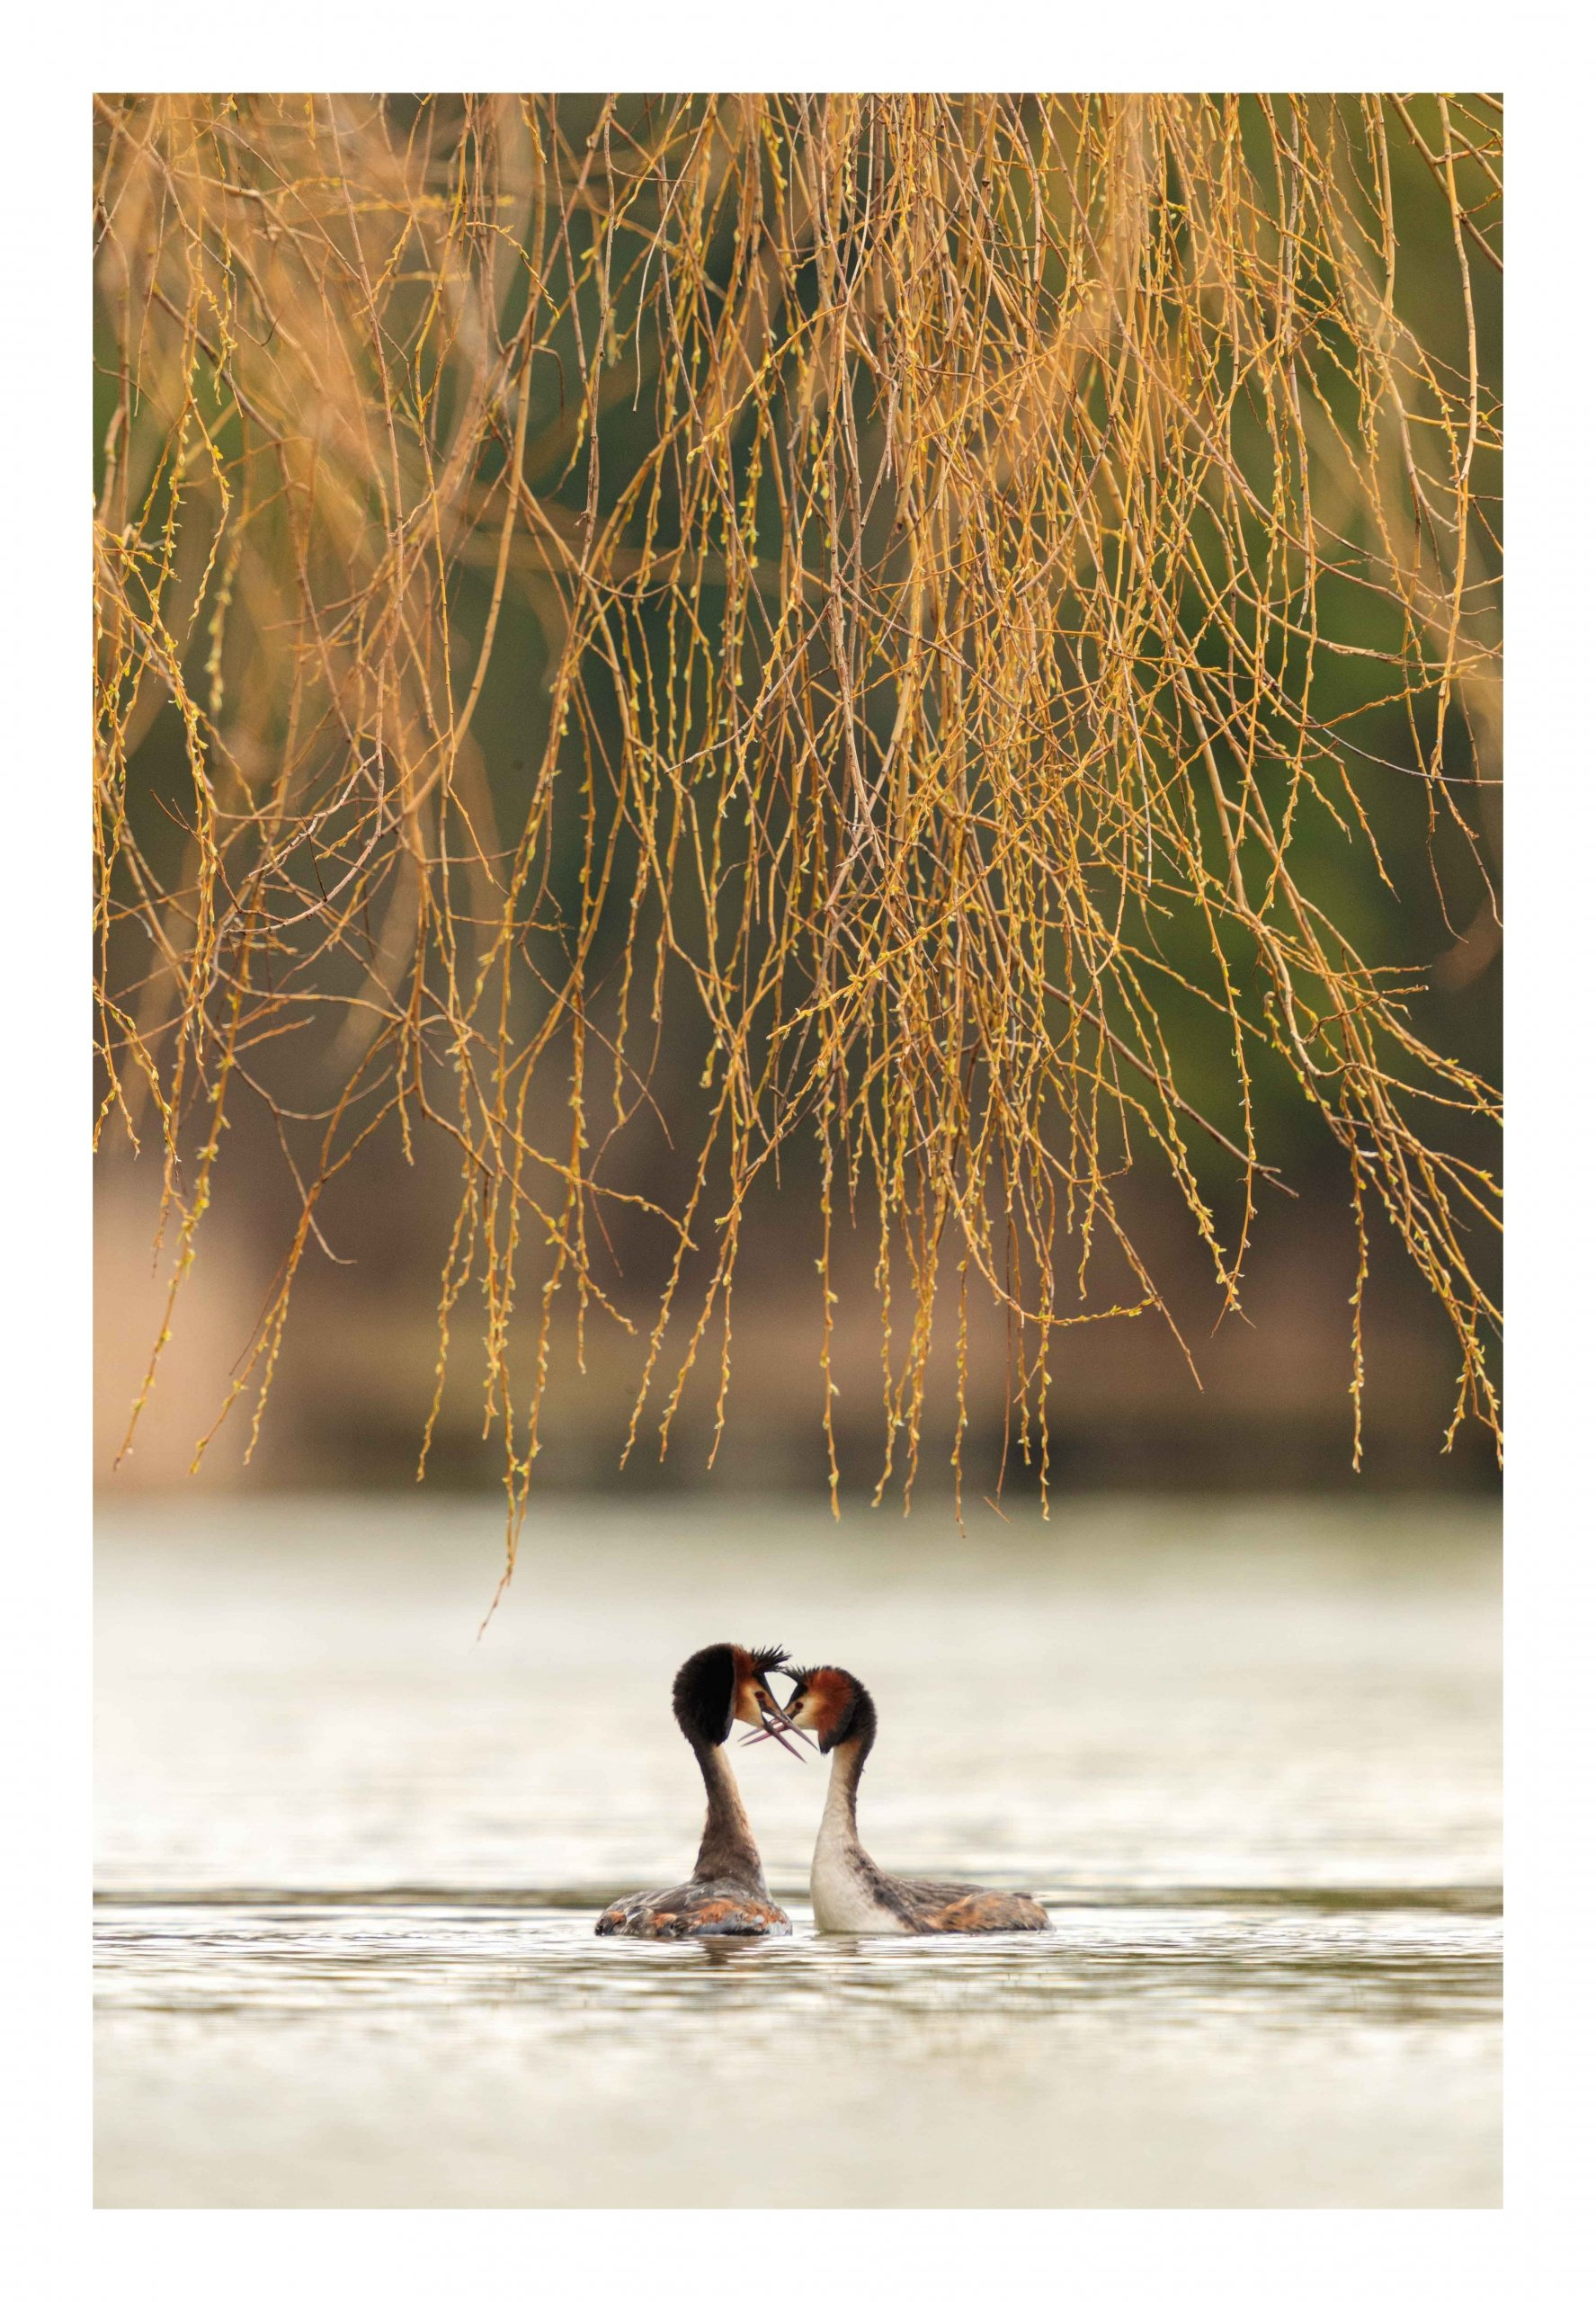 Willow courtship